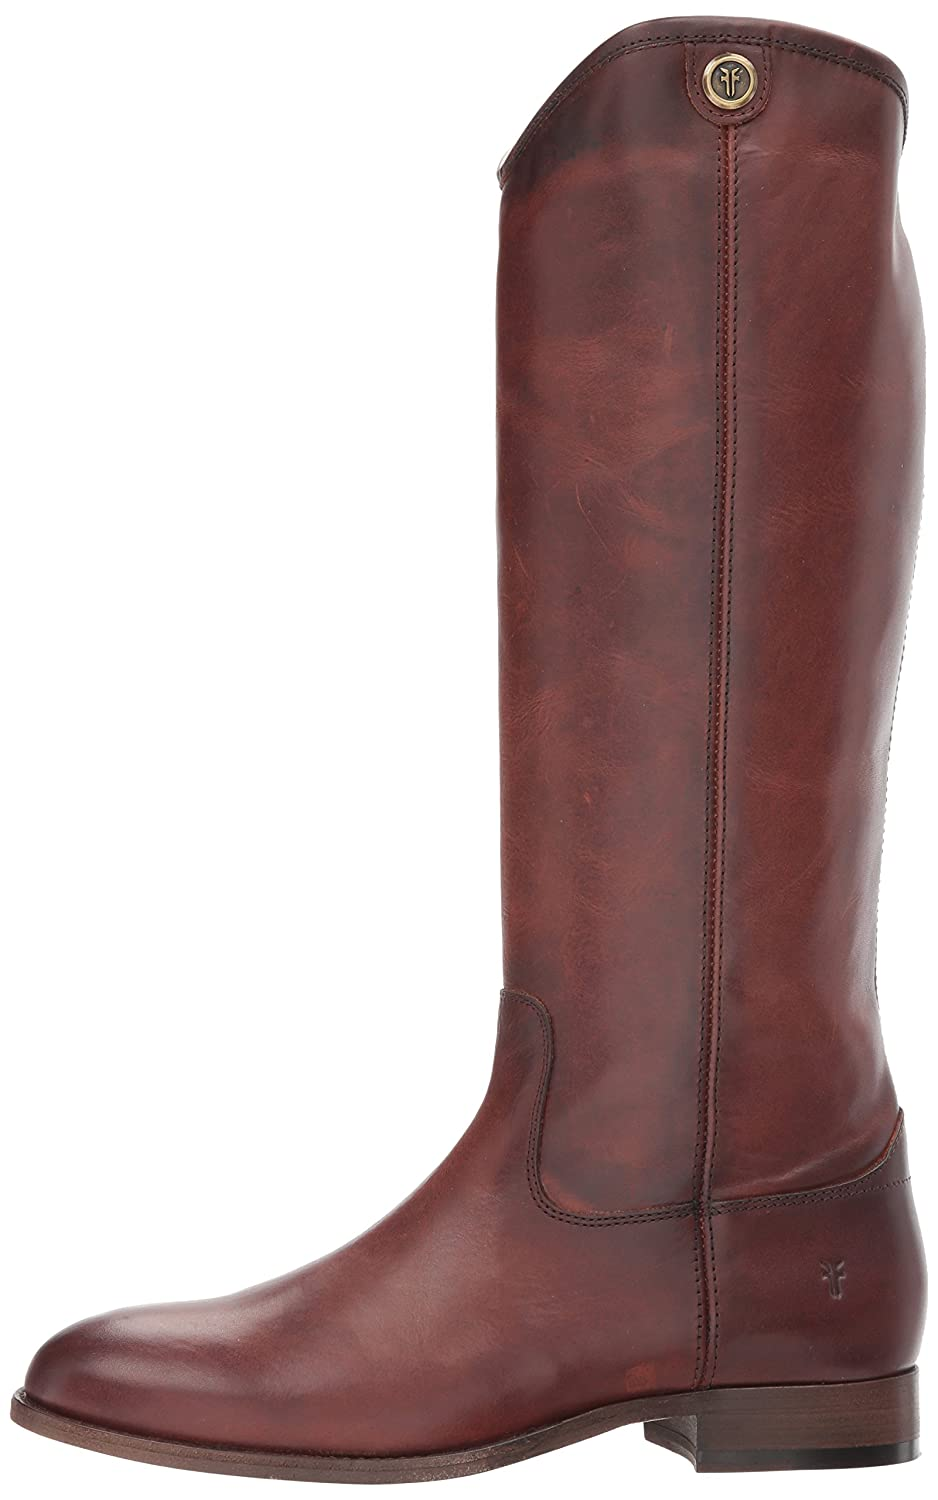 FRYE Women's Melissa Button 2 Extended Calf Riding US|Redwood Boot B06W2FLHKX 7.5 B(M) US|Redwood Riding Extended Calf b8ac4b